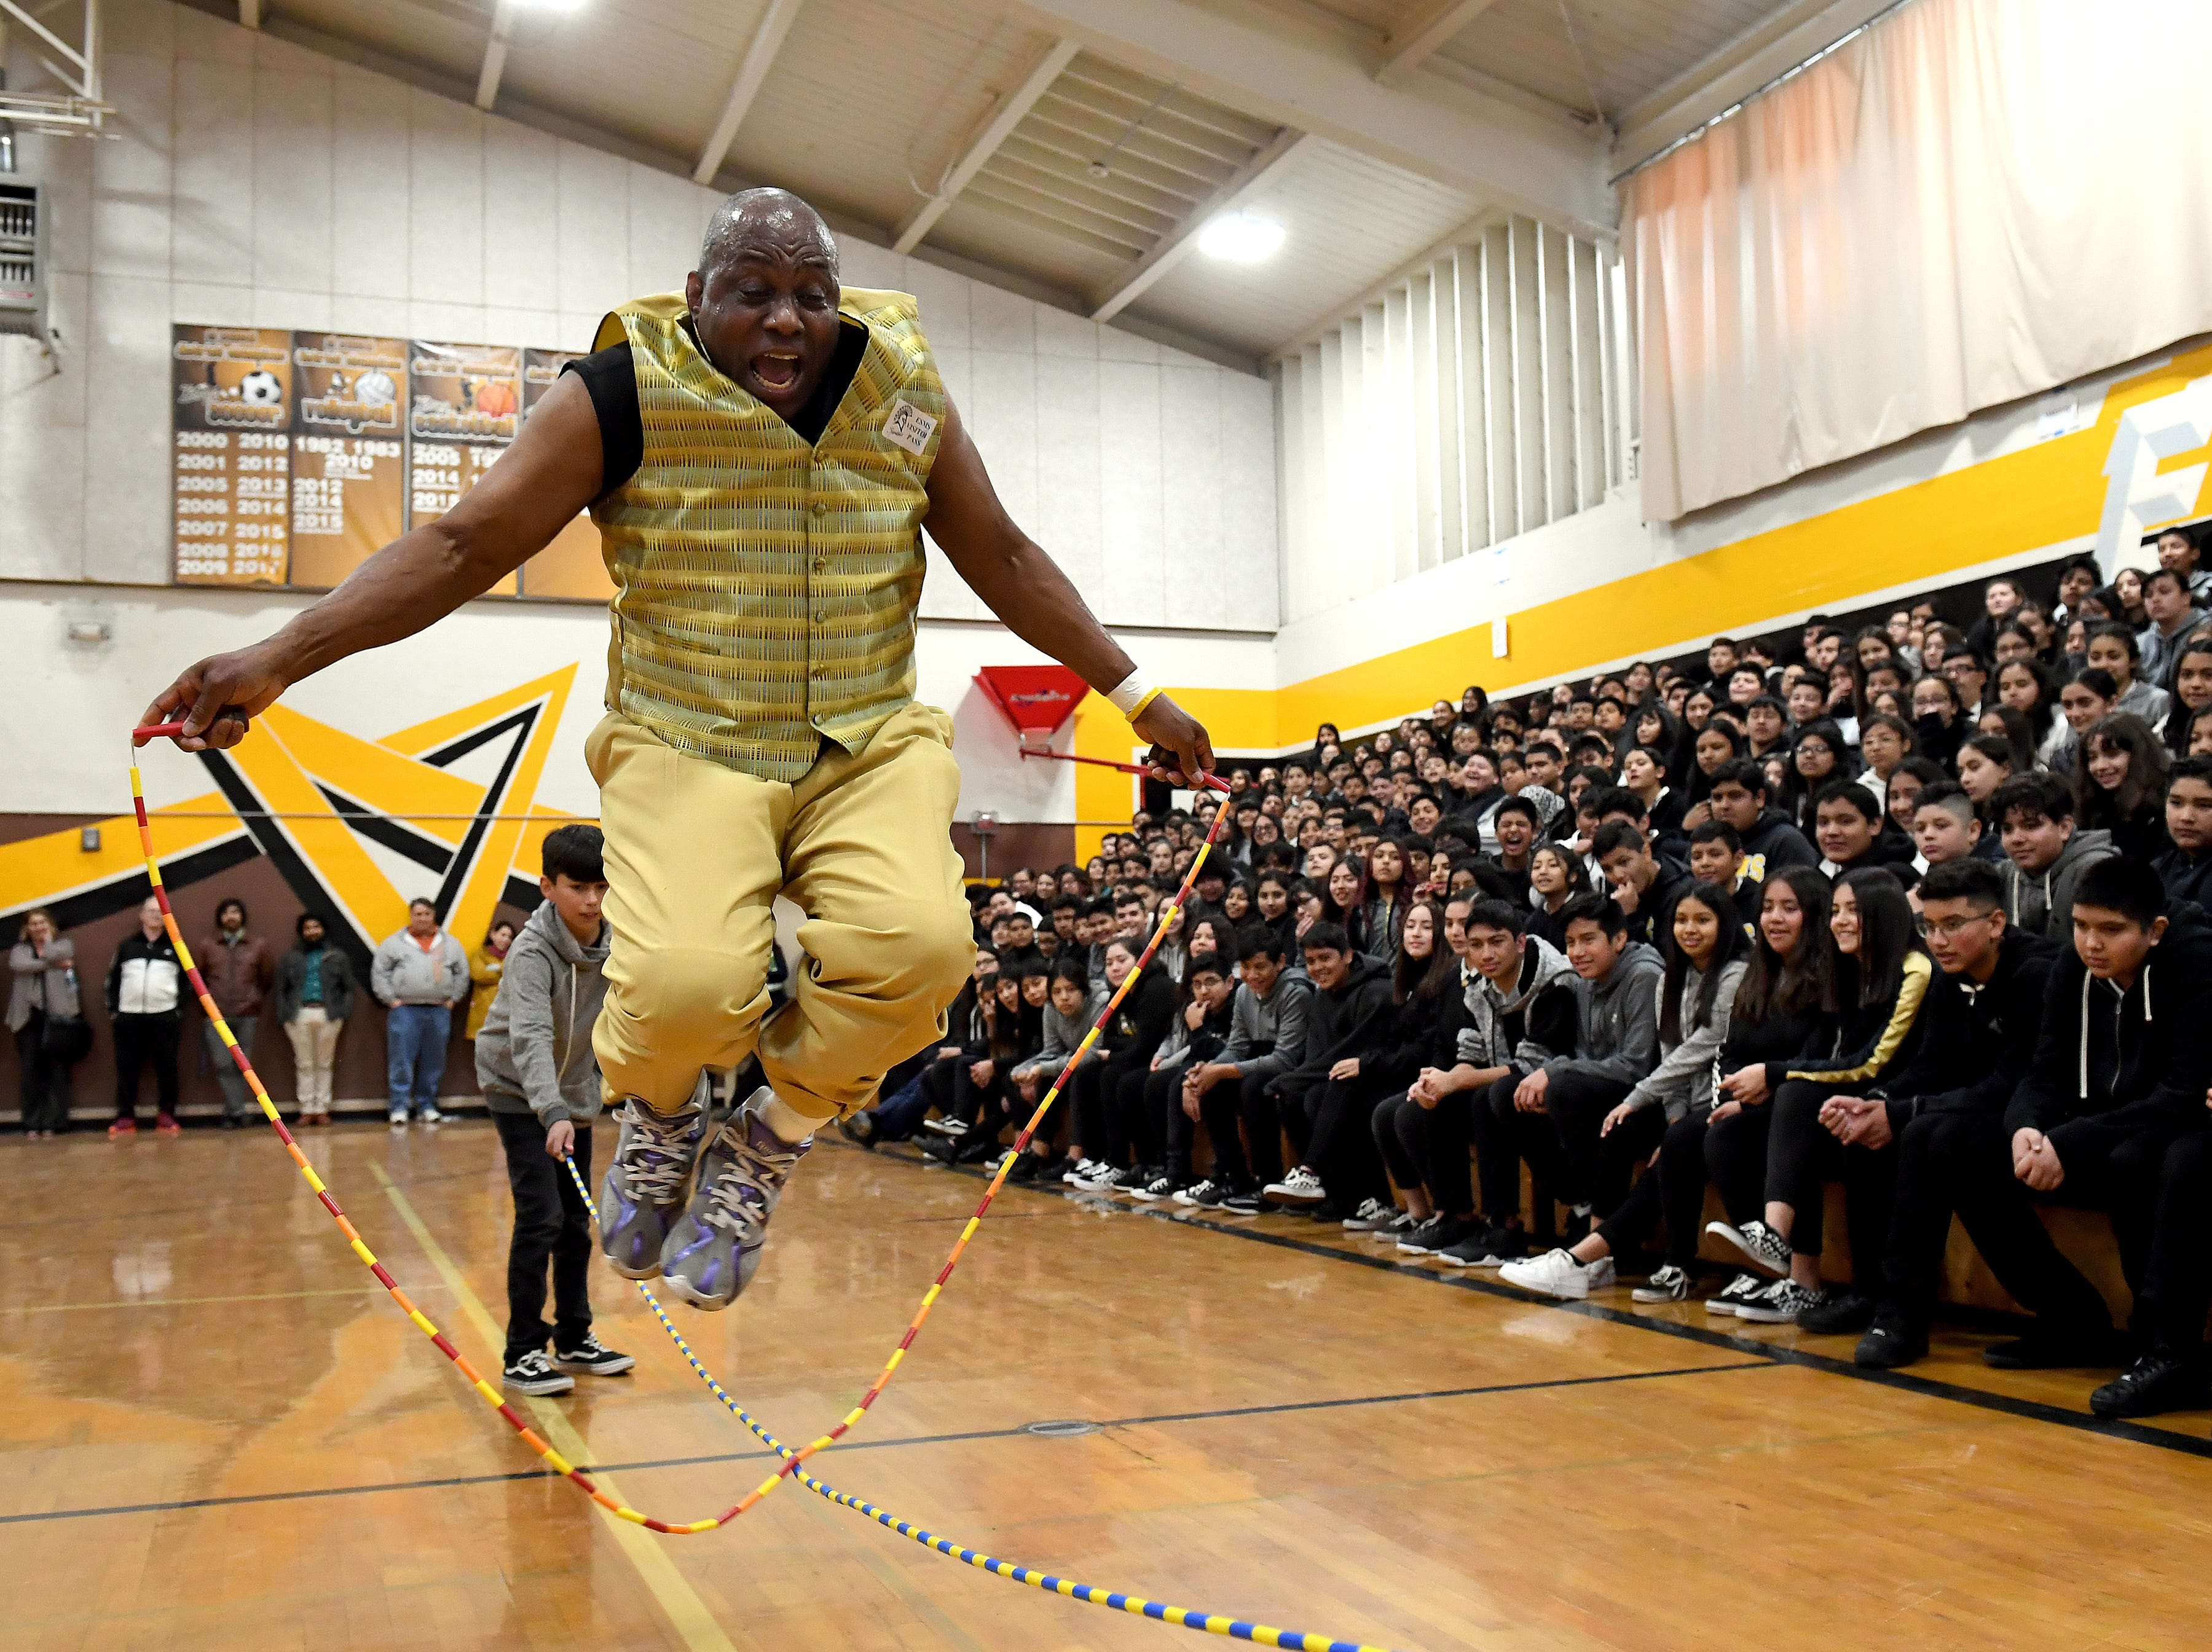 James Thompson jumps rope over a jump rope at El Sausal Middle School during a visit Feb. 21, 2019.